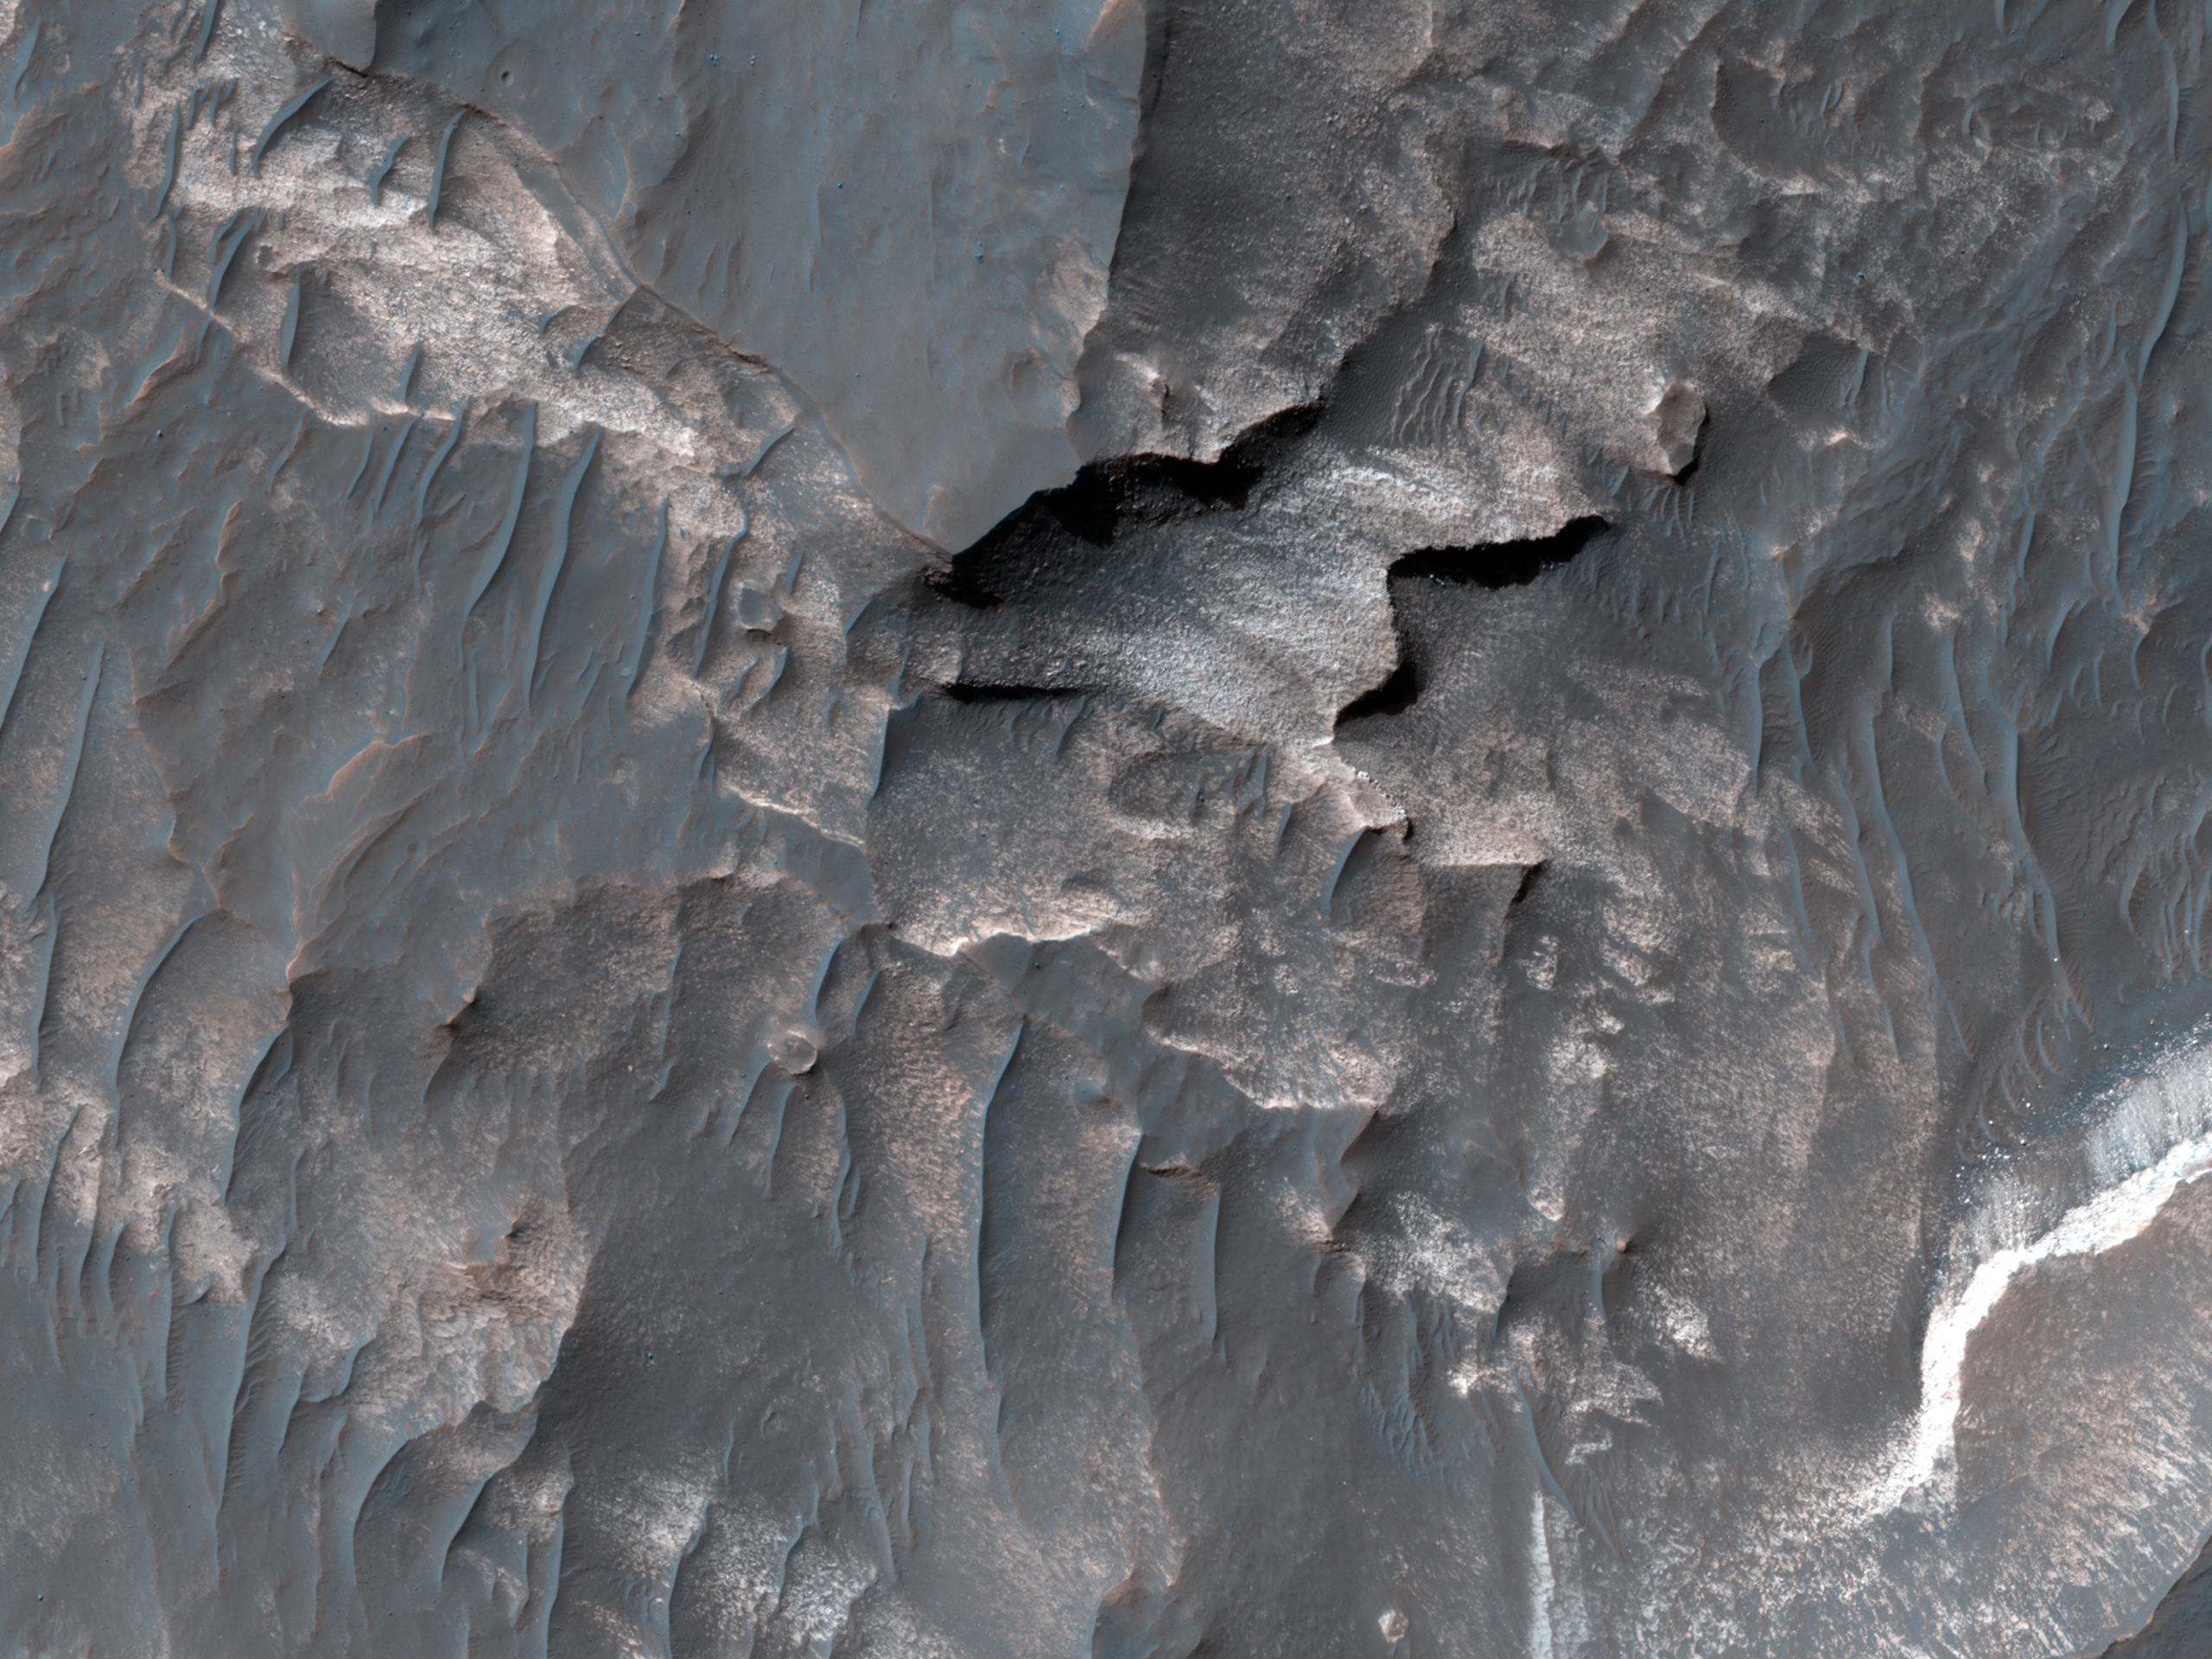 Light-Toned Deposits along Coprates Chasma Slopes